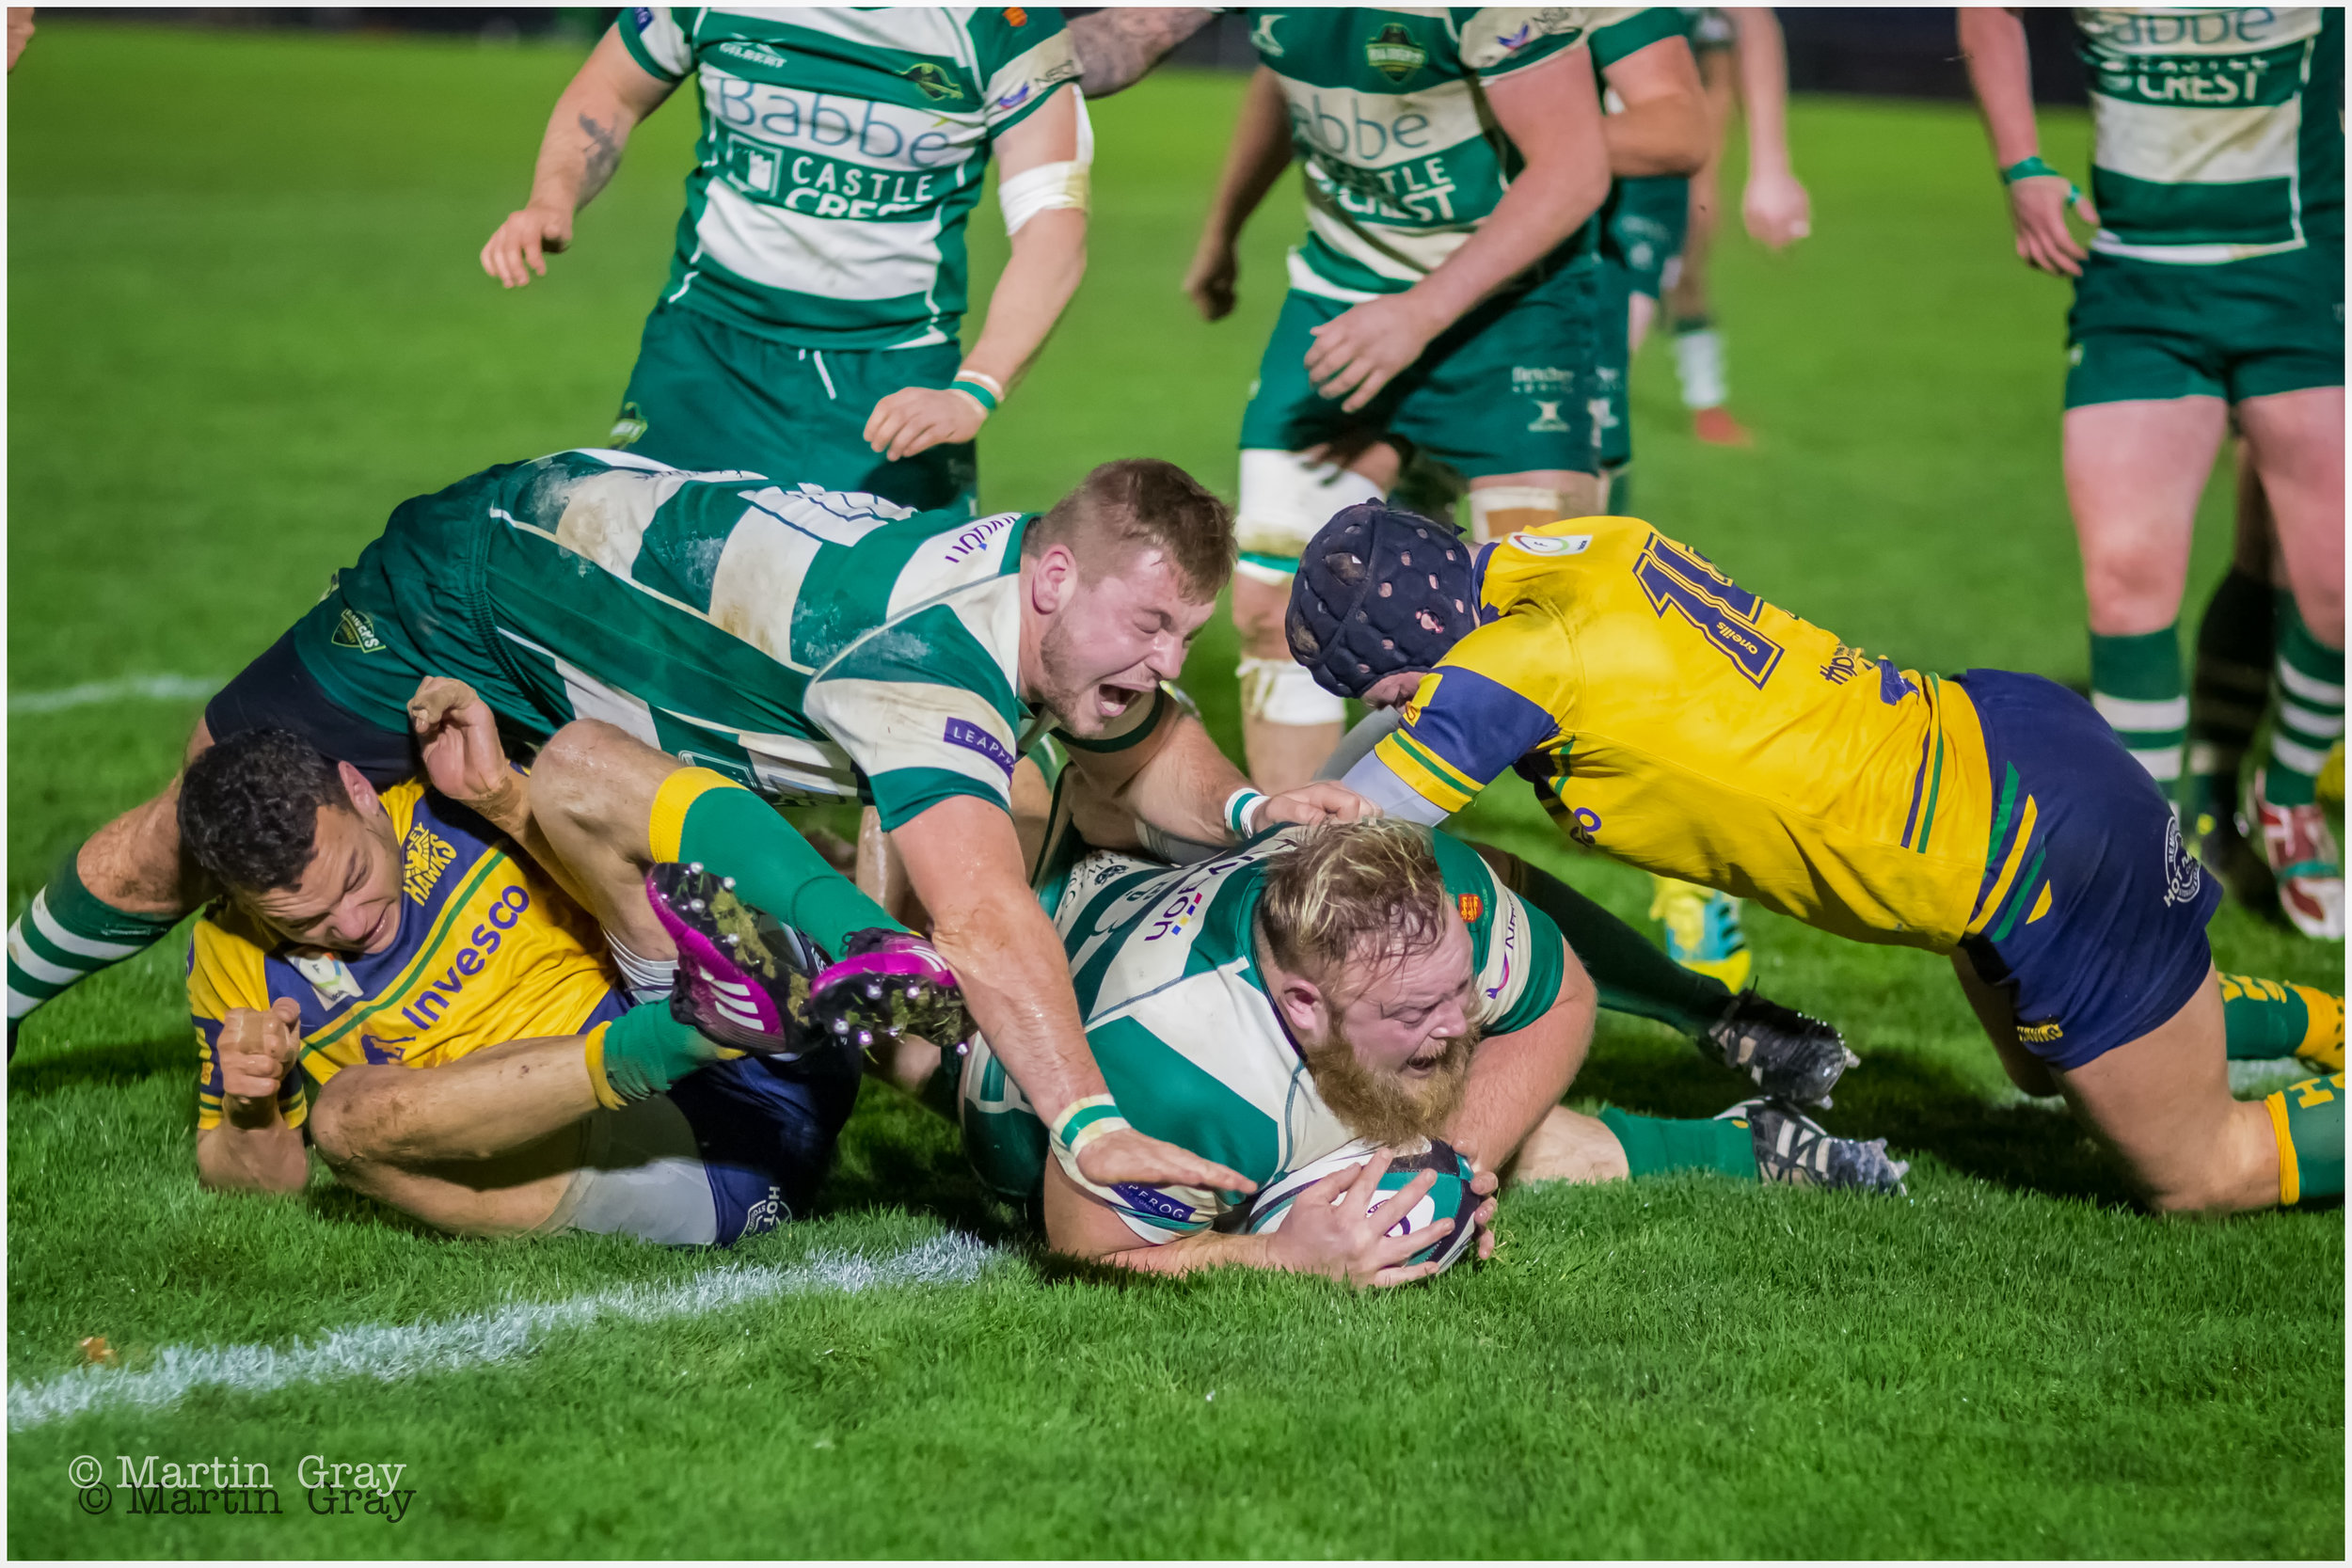 Guernsey Raiders v Henley Hawks in National 2 South Sat 8th December 2018… Hawks win… MORE PHOTO TO BE ADDED LATER TODAY!!!!!